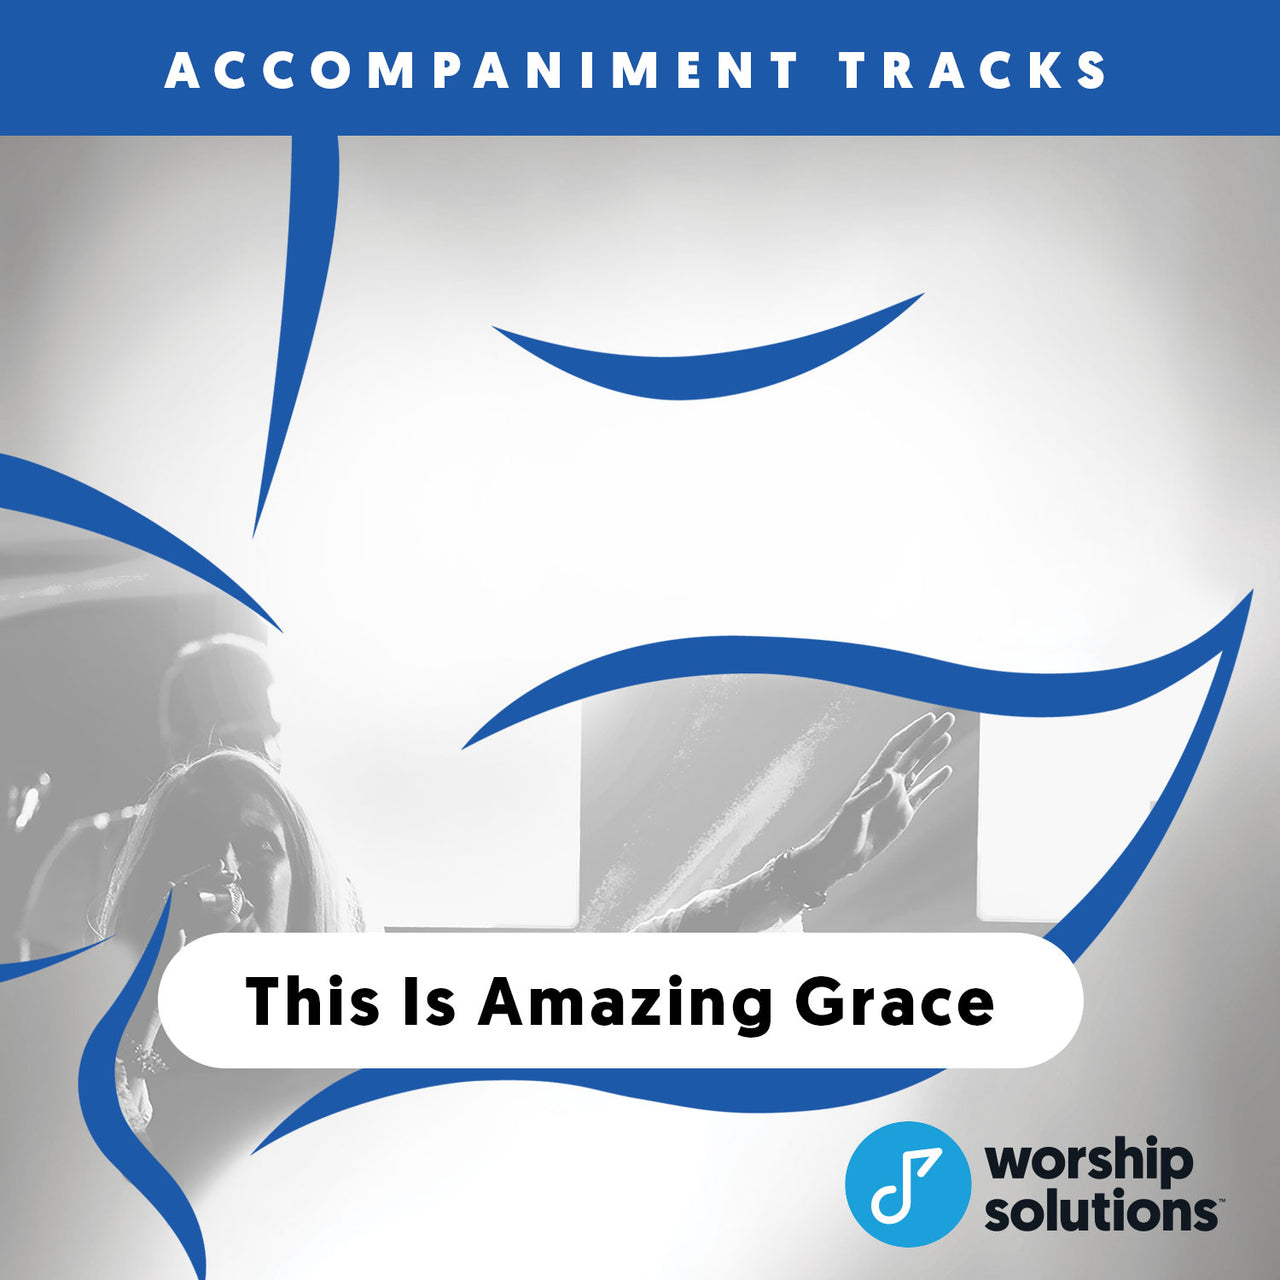 This is Amazing Grace, Accompaniment Track